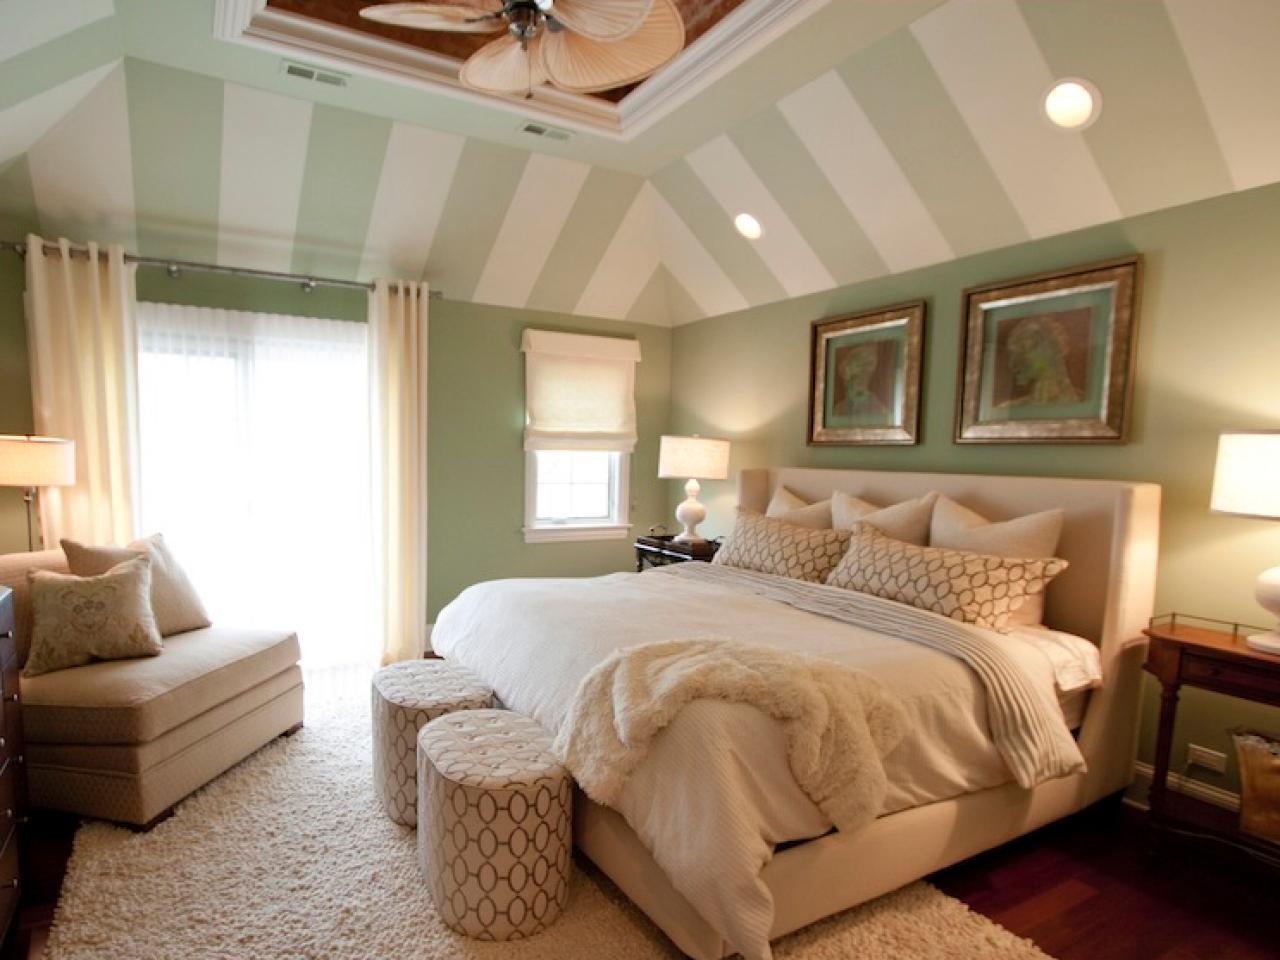 Coastal inspired bedrooms bedrooms bedroom decorating ideas hgtv Master bedroom with green walls